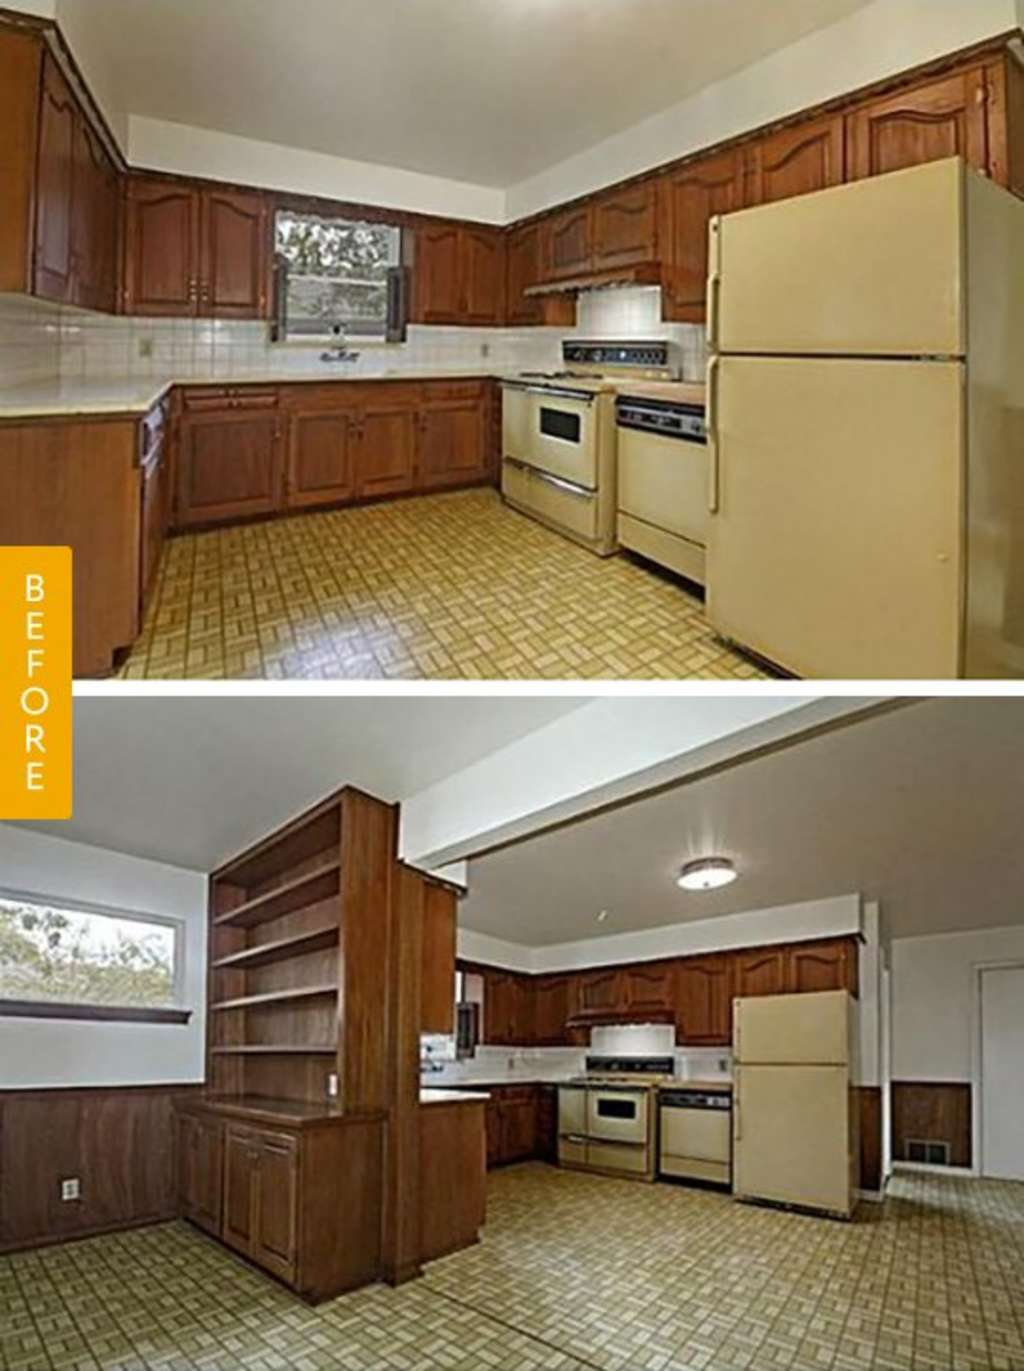 Before & After: A 1950s Ranch Kitchen Gets Its First